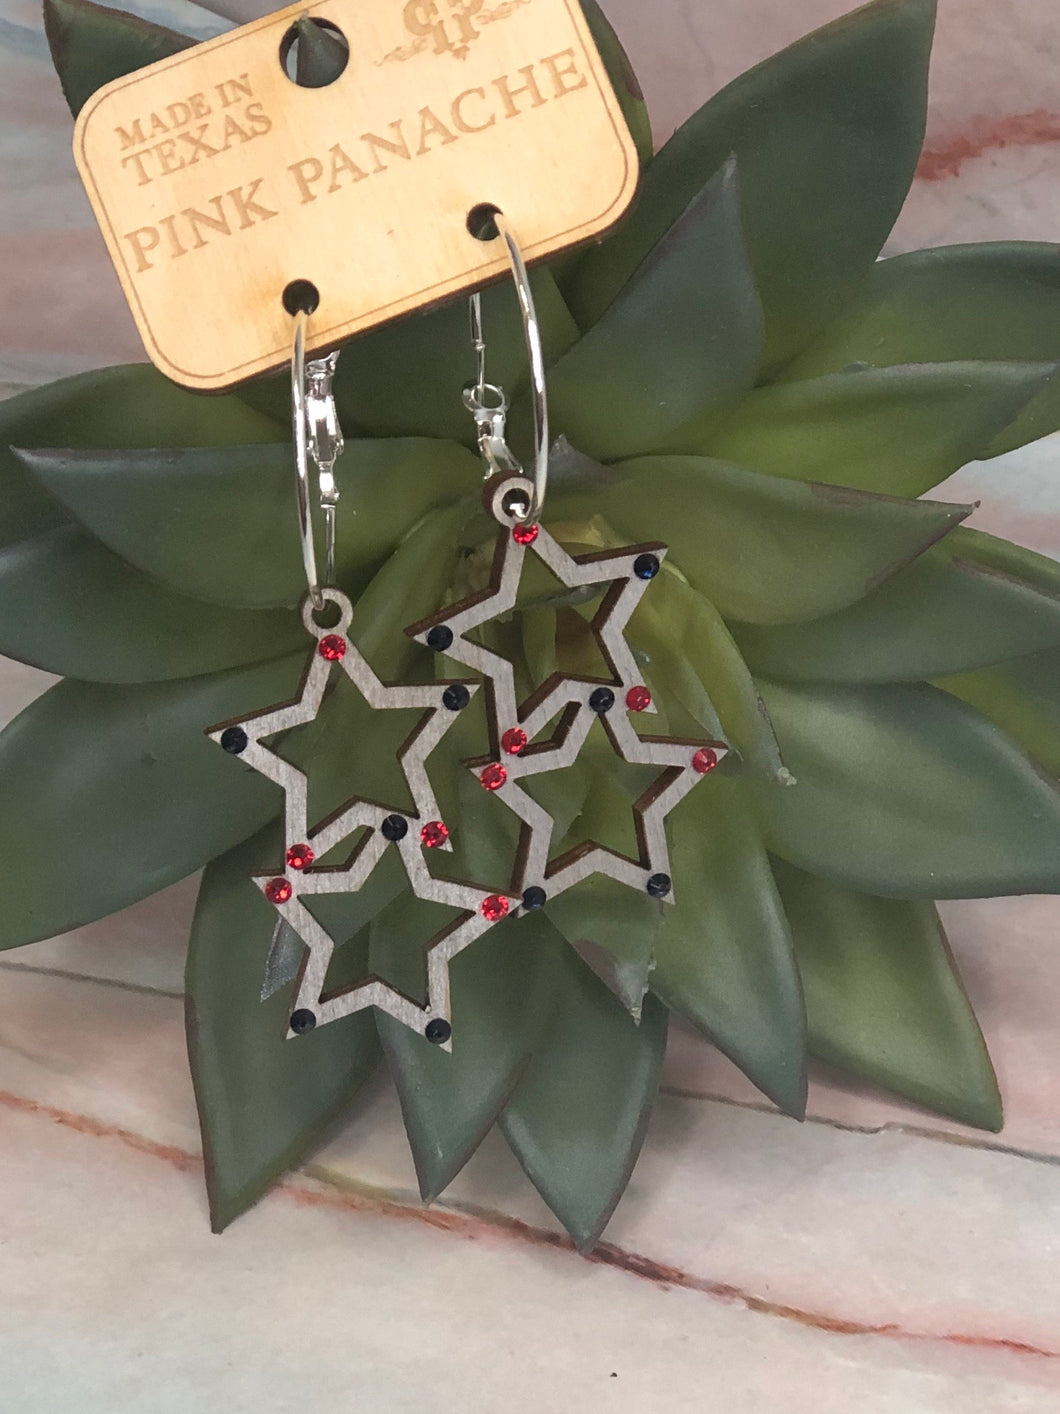 Pink Panache Star earrings